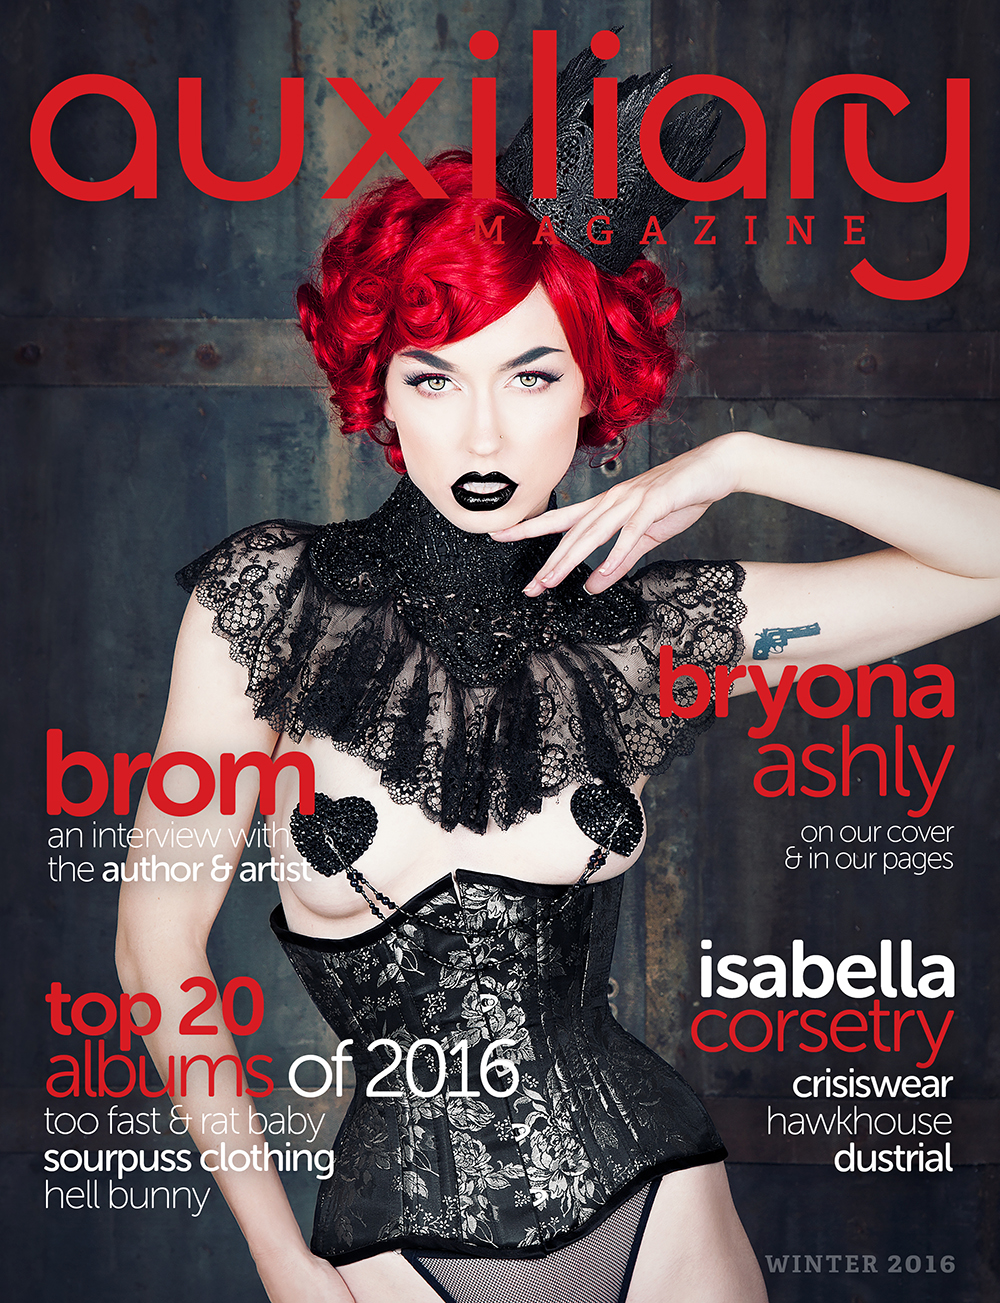 Auxiliary Magazine Winter 2016 Issue